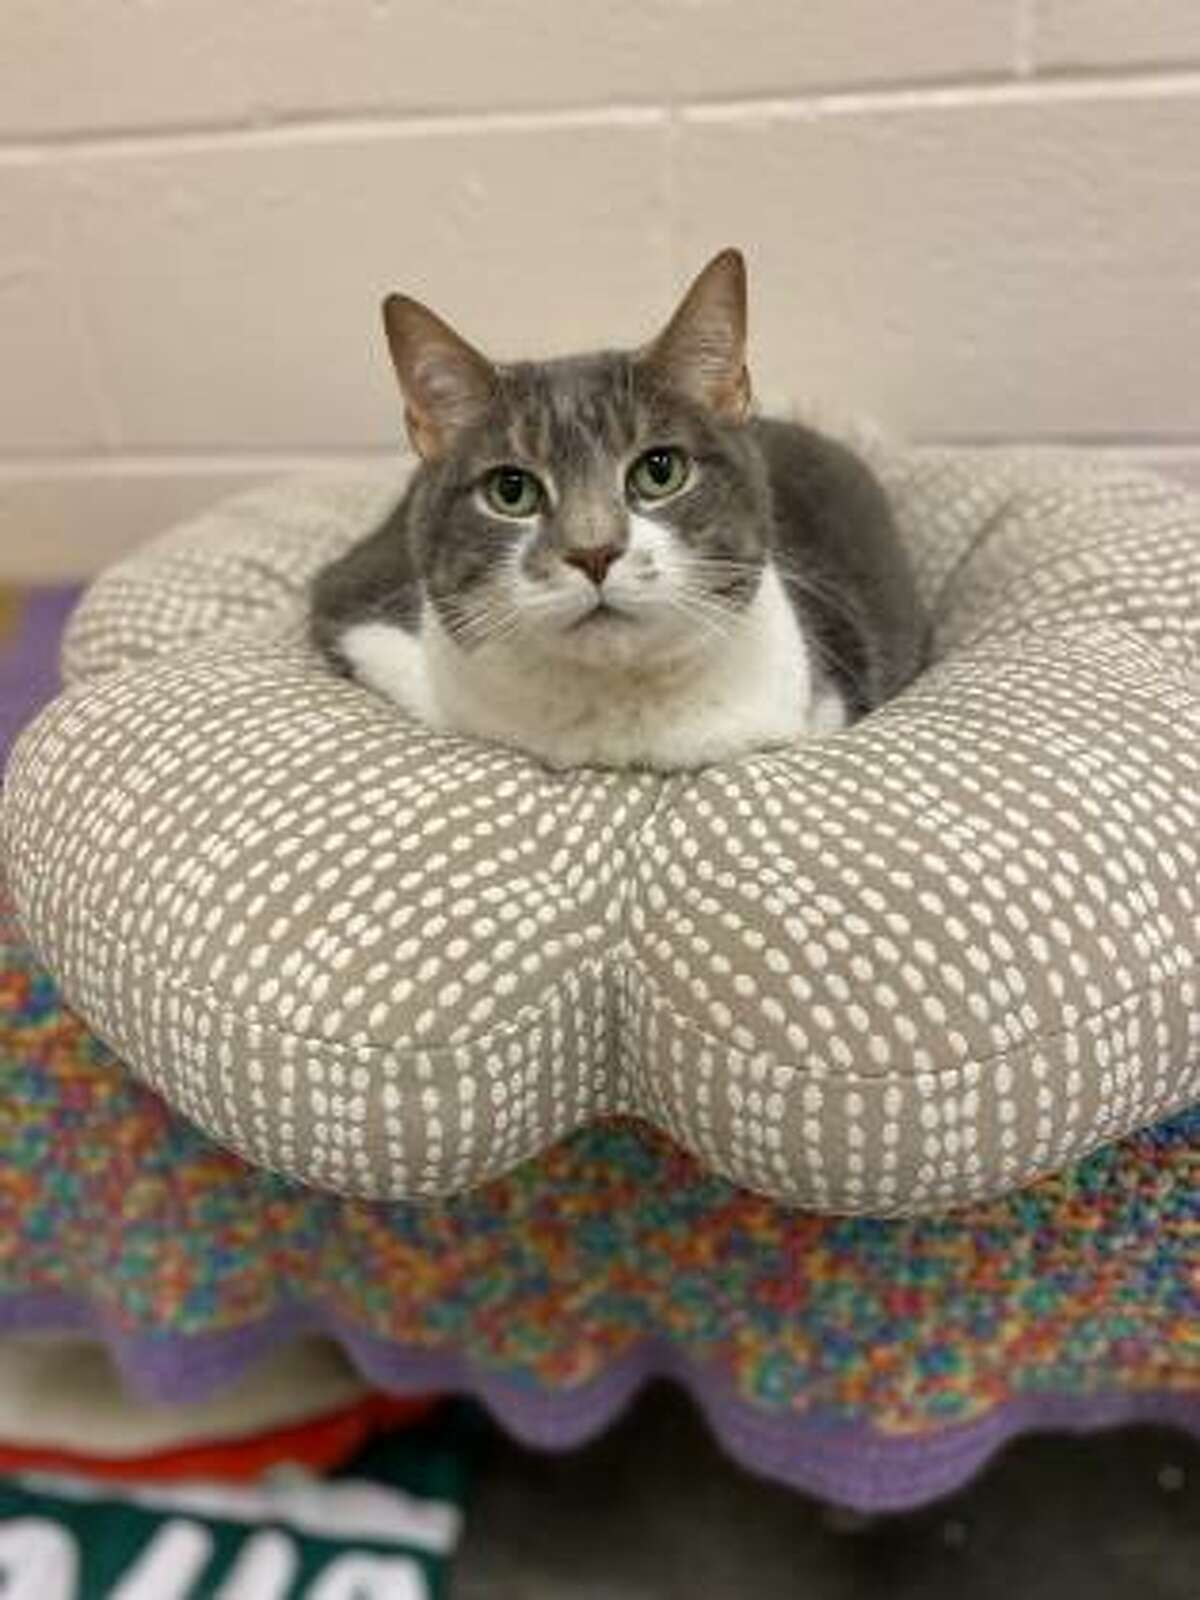 Finn is a sweet kitty who is patiently waiting to find her new home. Finn is 9 and she has not had much experience with children but she is willing to consider sharing her home with kids over 10 who can be gentle and respectful of pets. Finn may also be willing to share her home with a cat or dog that would be respectful of cats. This girl is a quiet and reserved kitty who would prefer a peaceful home. Apply to adopt Finn from our Westport location. Remember, the Connecticut Humane Society has no time limits for adoption. Applications for adoption can be obtained at https://cthumane.org/adopt/all-adoptable-pets/. To learn more about operations during COVID-19, go to https://cthumane.org/adopt/adoption-process/.